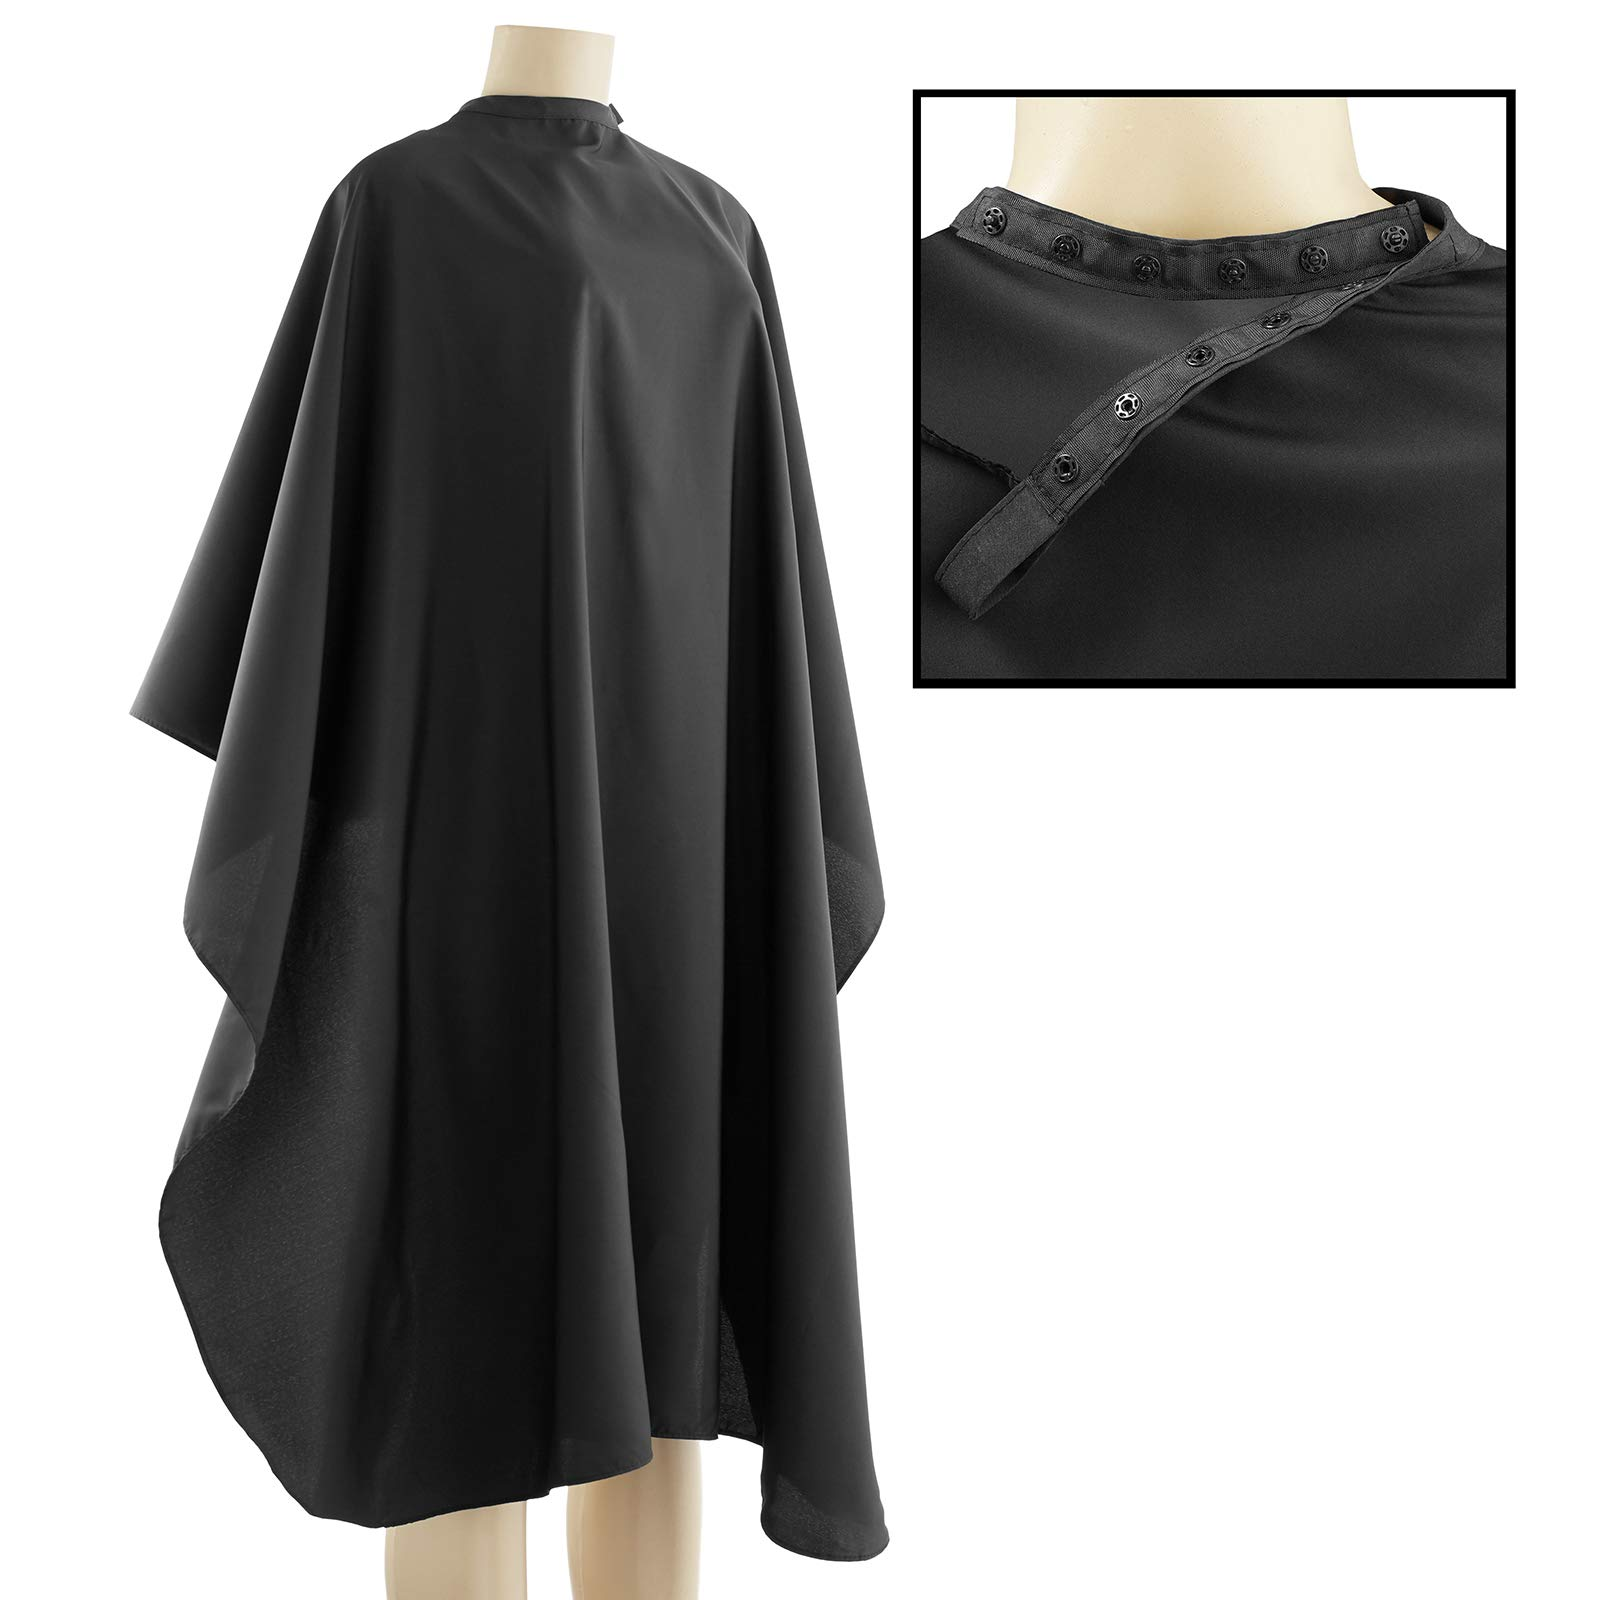 Salon Sundry Professional Hair Salon Nylon Cape with Snap Closure - 50 in. x 60 in. by Salon Sundry